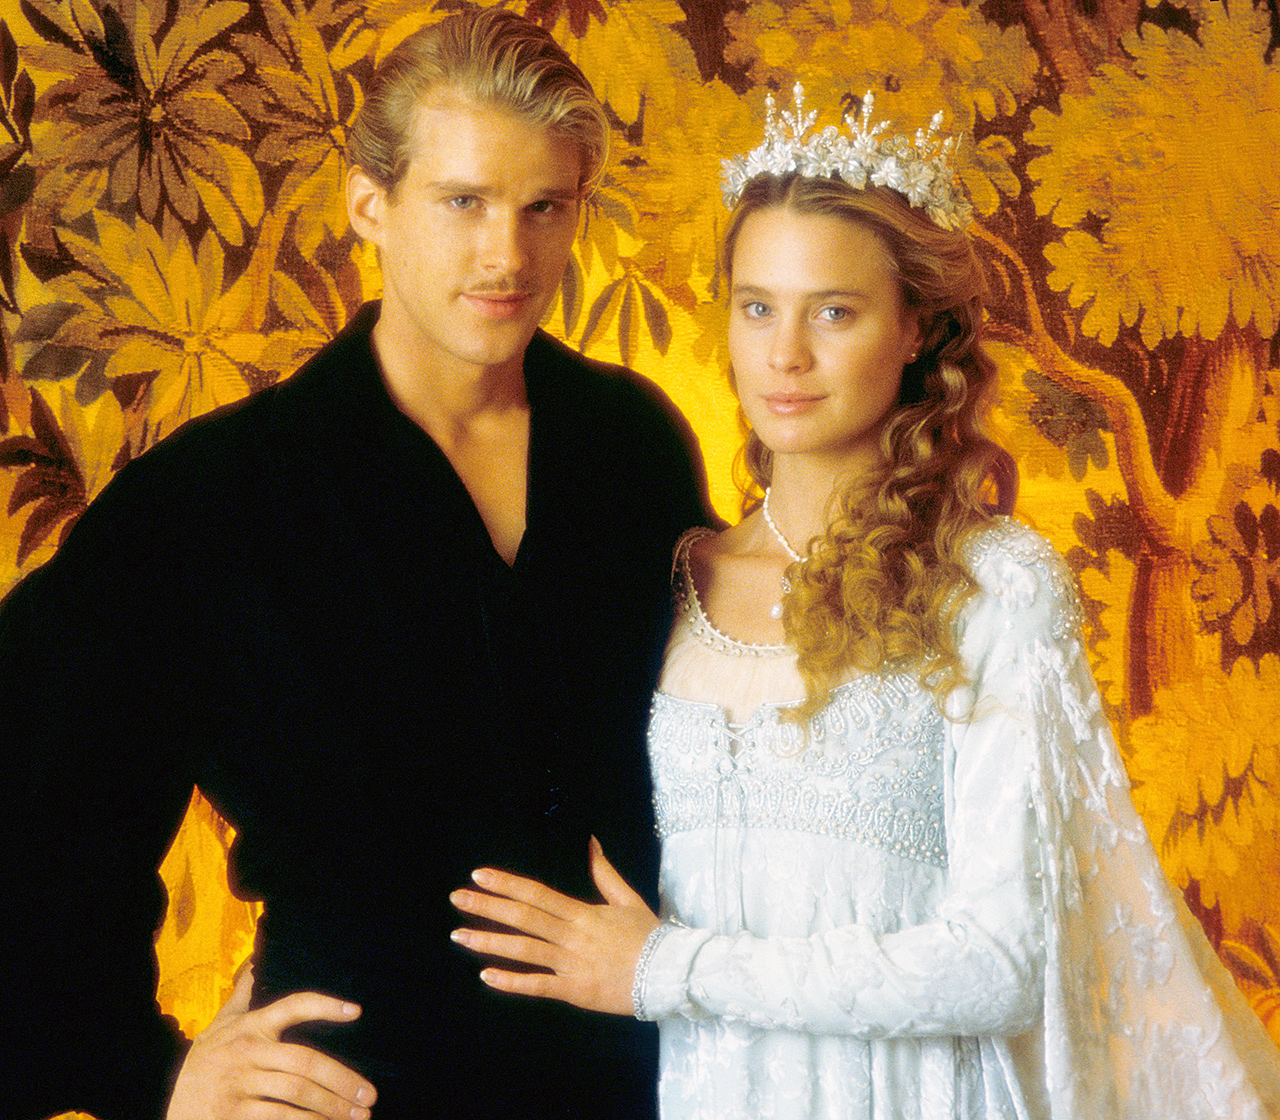 "Based on the 1973 novel of the same name, the 1987 film adaptation starred Wright as Buttercup, Princess of Florin in the Princess Bride . It quickly became a cult classic, earning the No. 88 spot in the American Film Institute's ""100 Years, 100 Passions"" list, which ranks the greatest movie romances of all time."